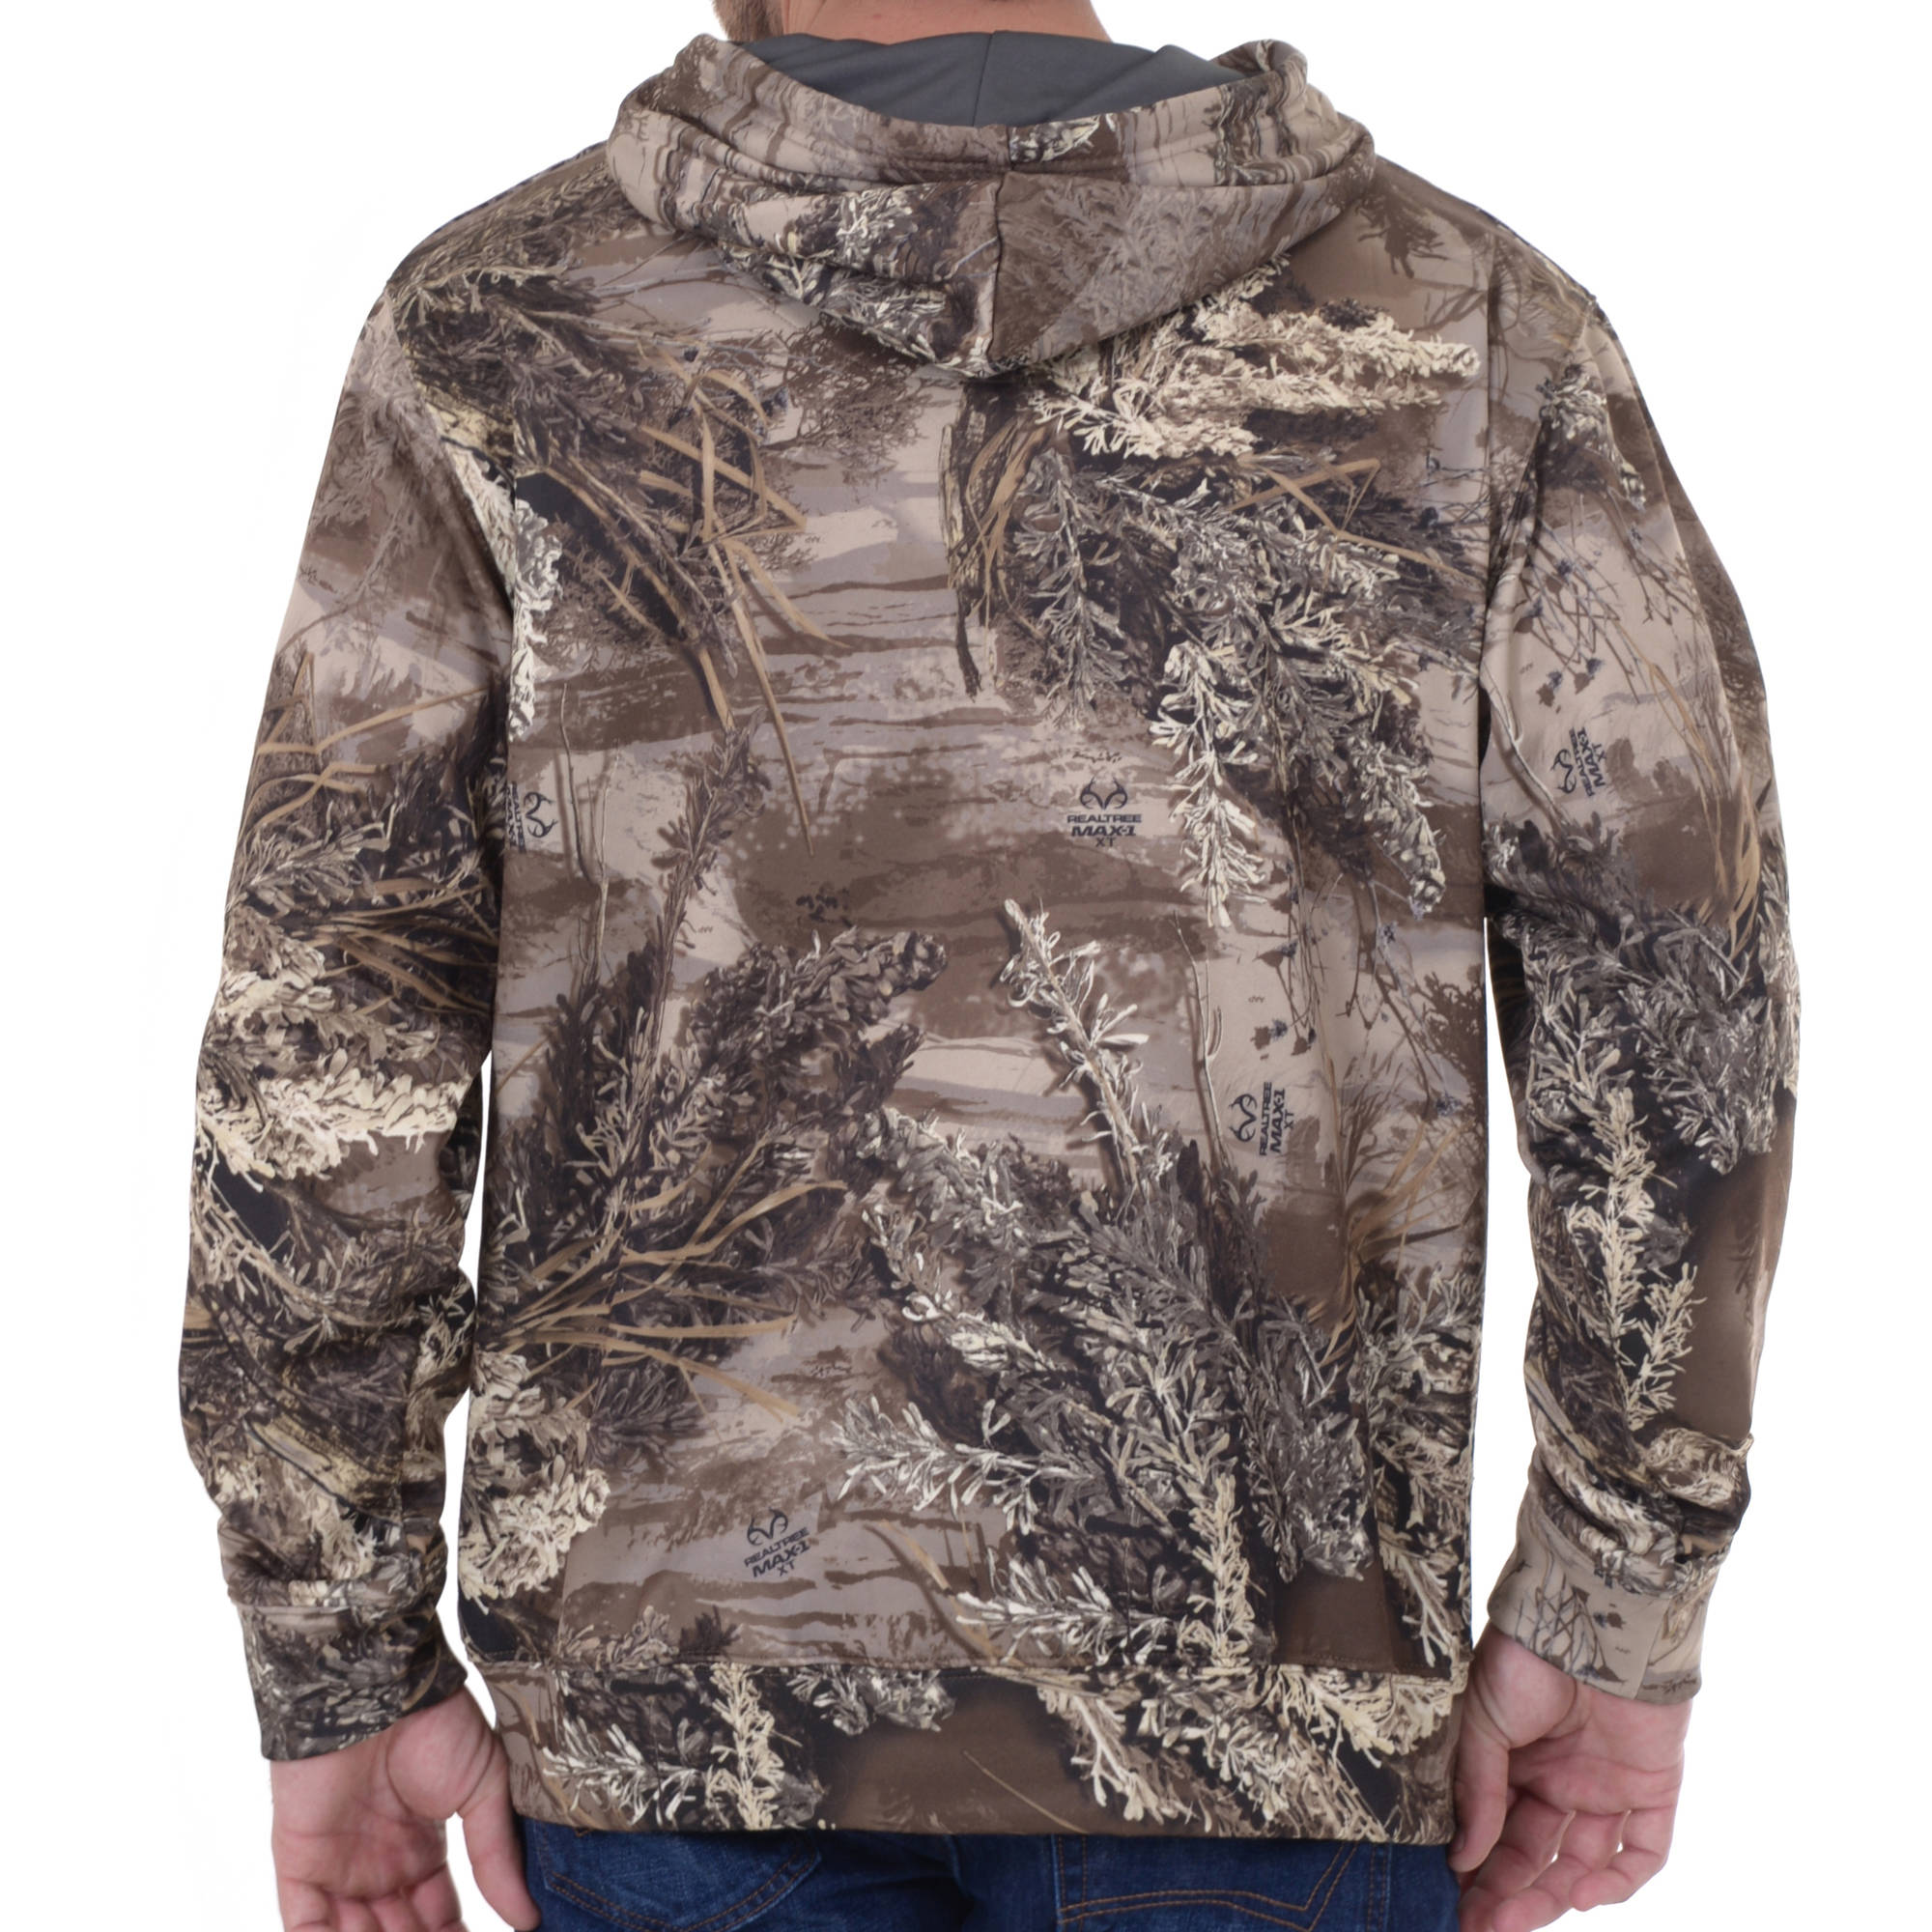 b6da22ed4a036 Realtree & Mossy Oak Breakup Country Men's Lightweight Camo Performance  Fleece Hoodie - Walmart.com